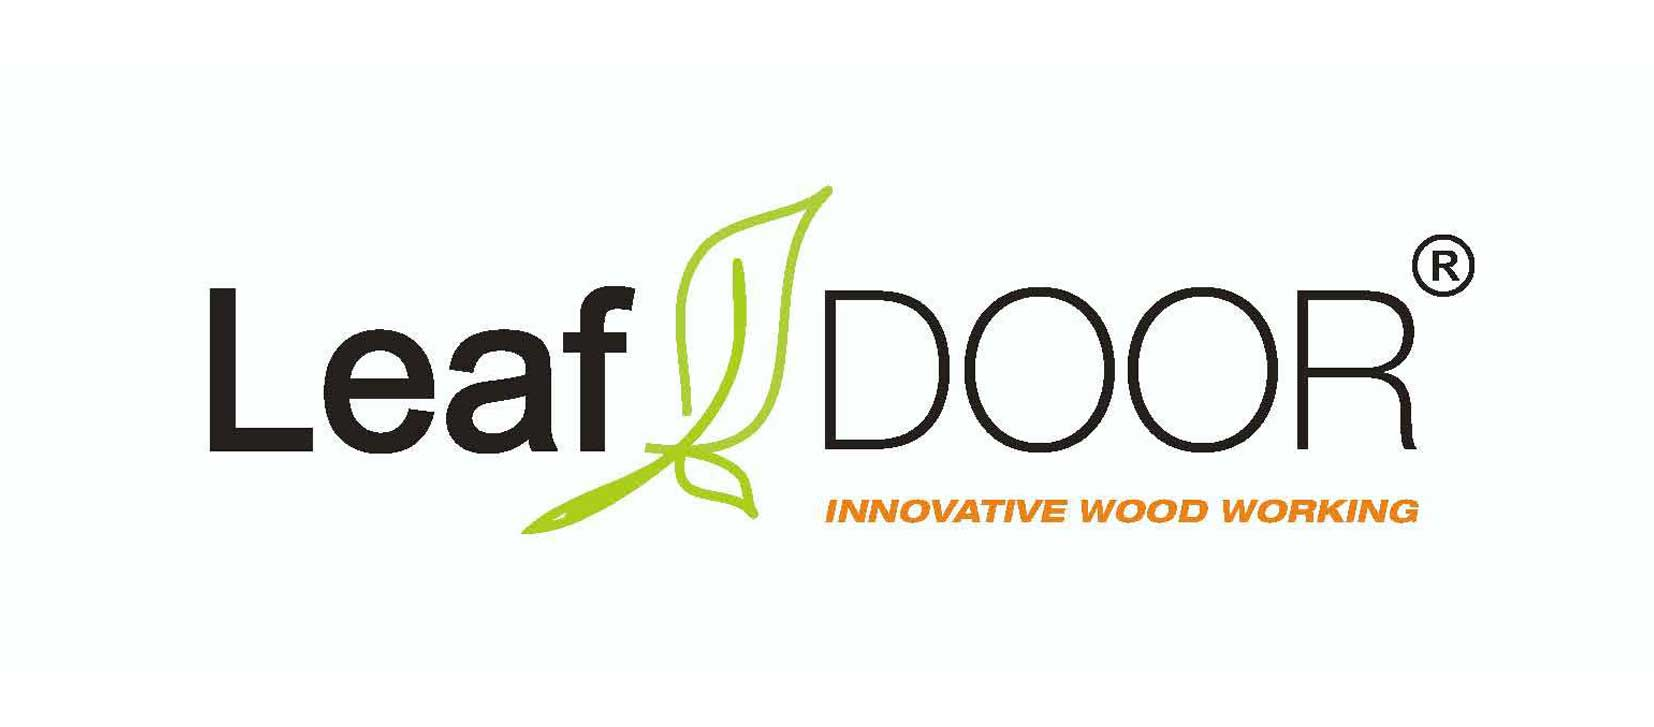 YOOSHIN Indonesiau0027s Leaf Door brand is making perfact Door from professional plan design and production based on its long experience.  sc 1 st  Yooshin Indonesia & wooden door indonesia